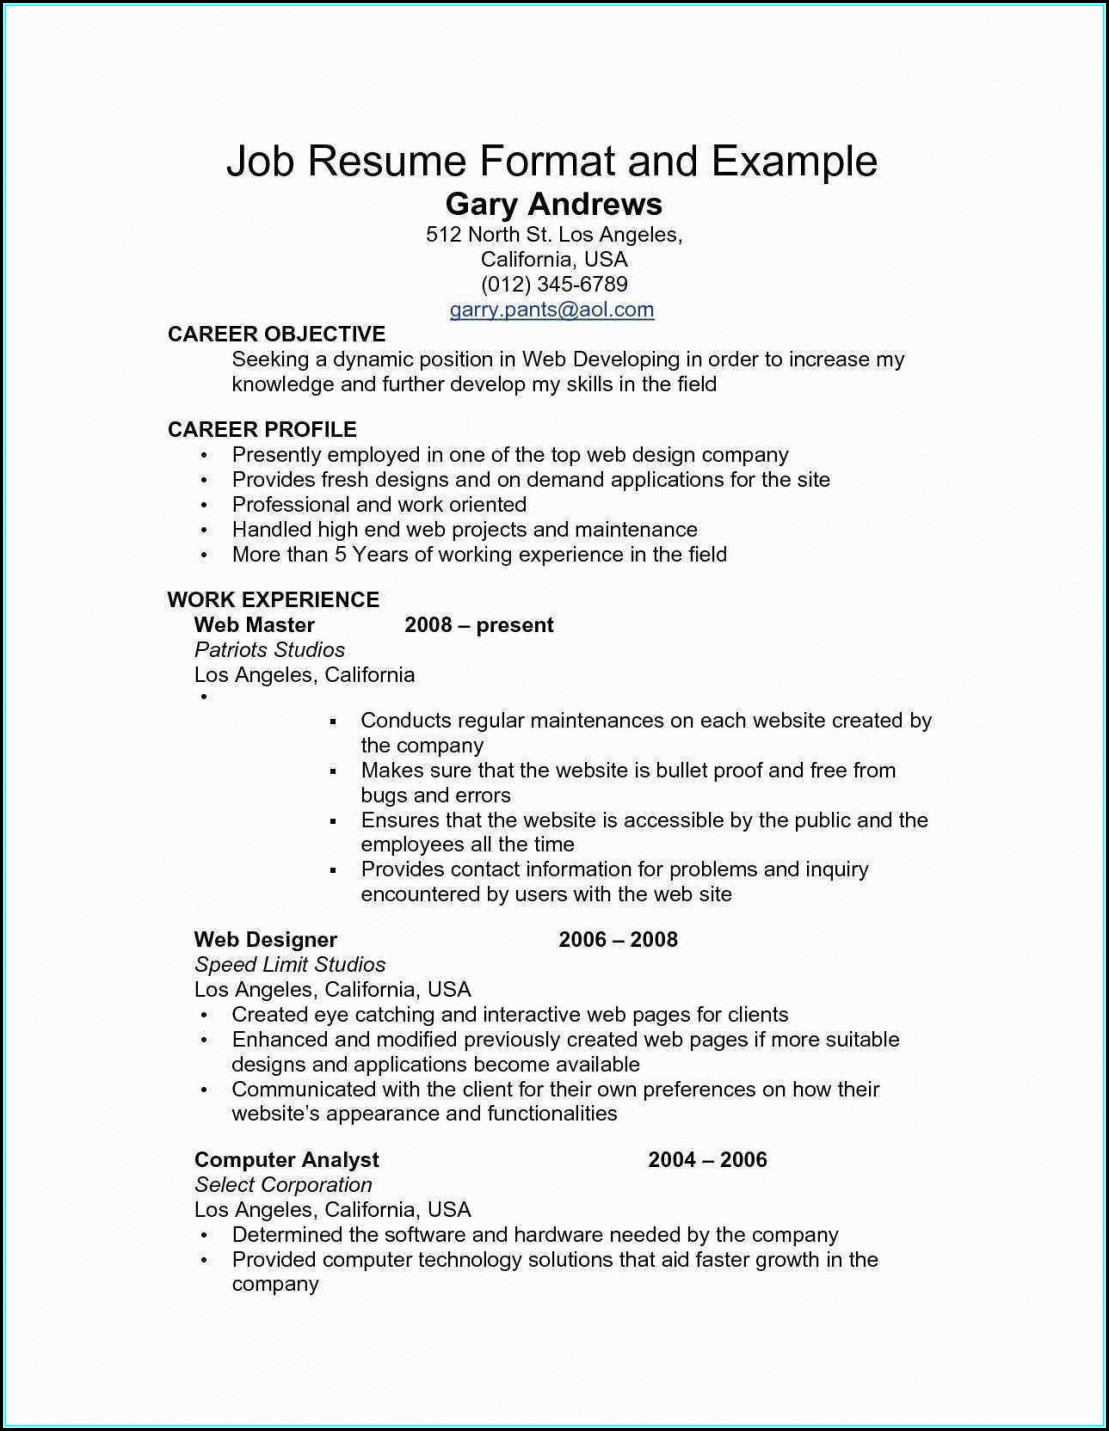 Resume For Federal Jobs